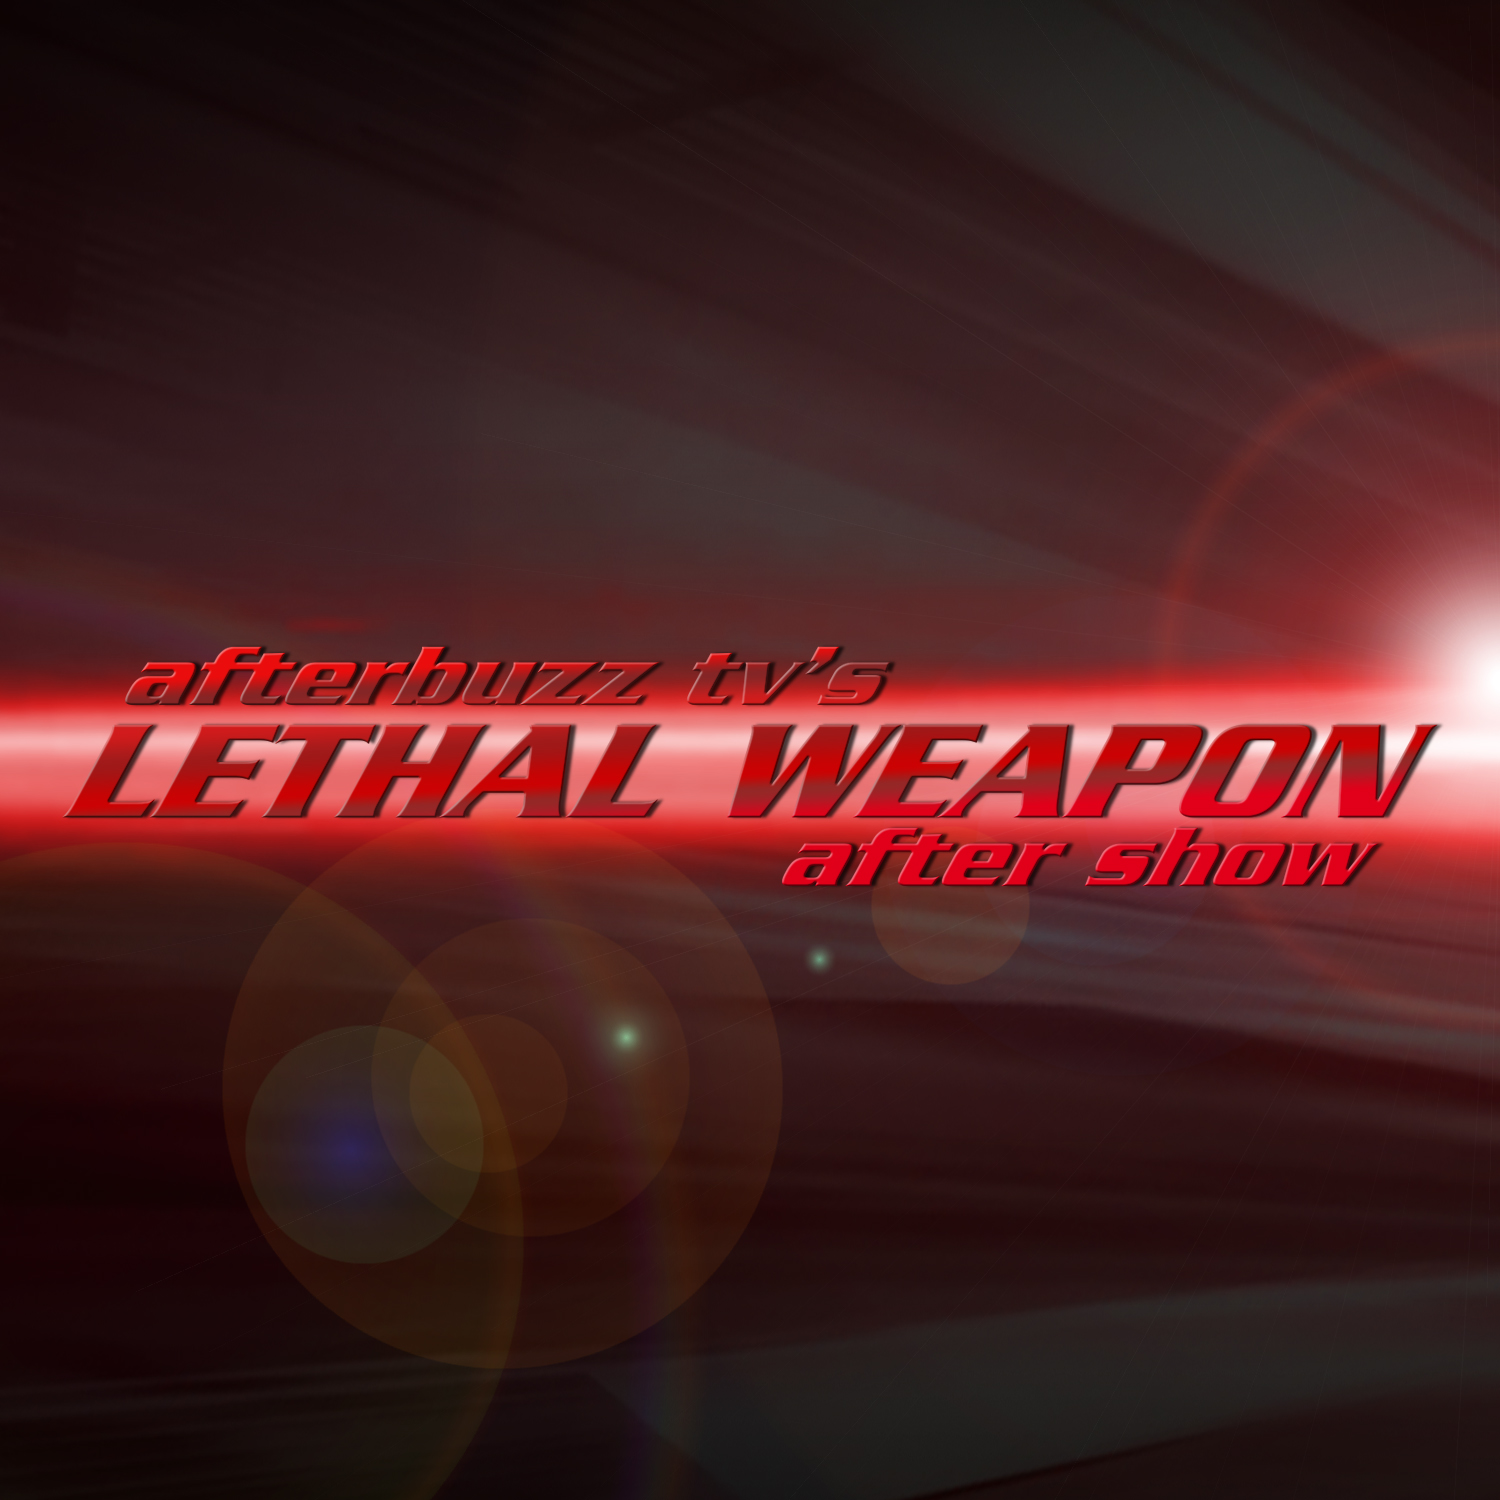 Lethal Weapon After Show